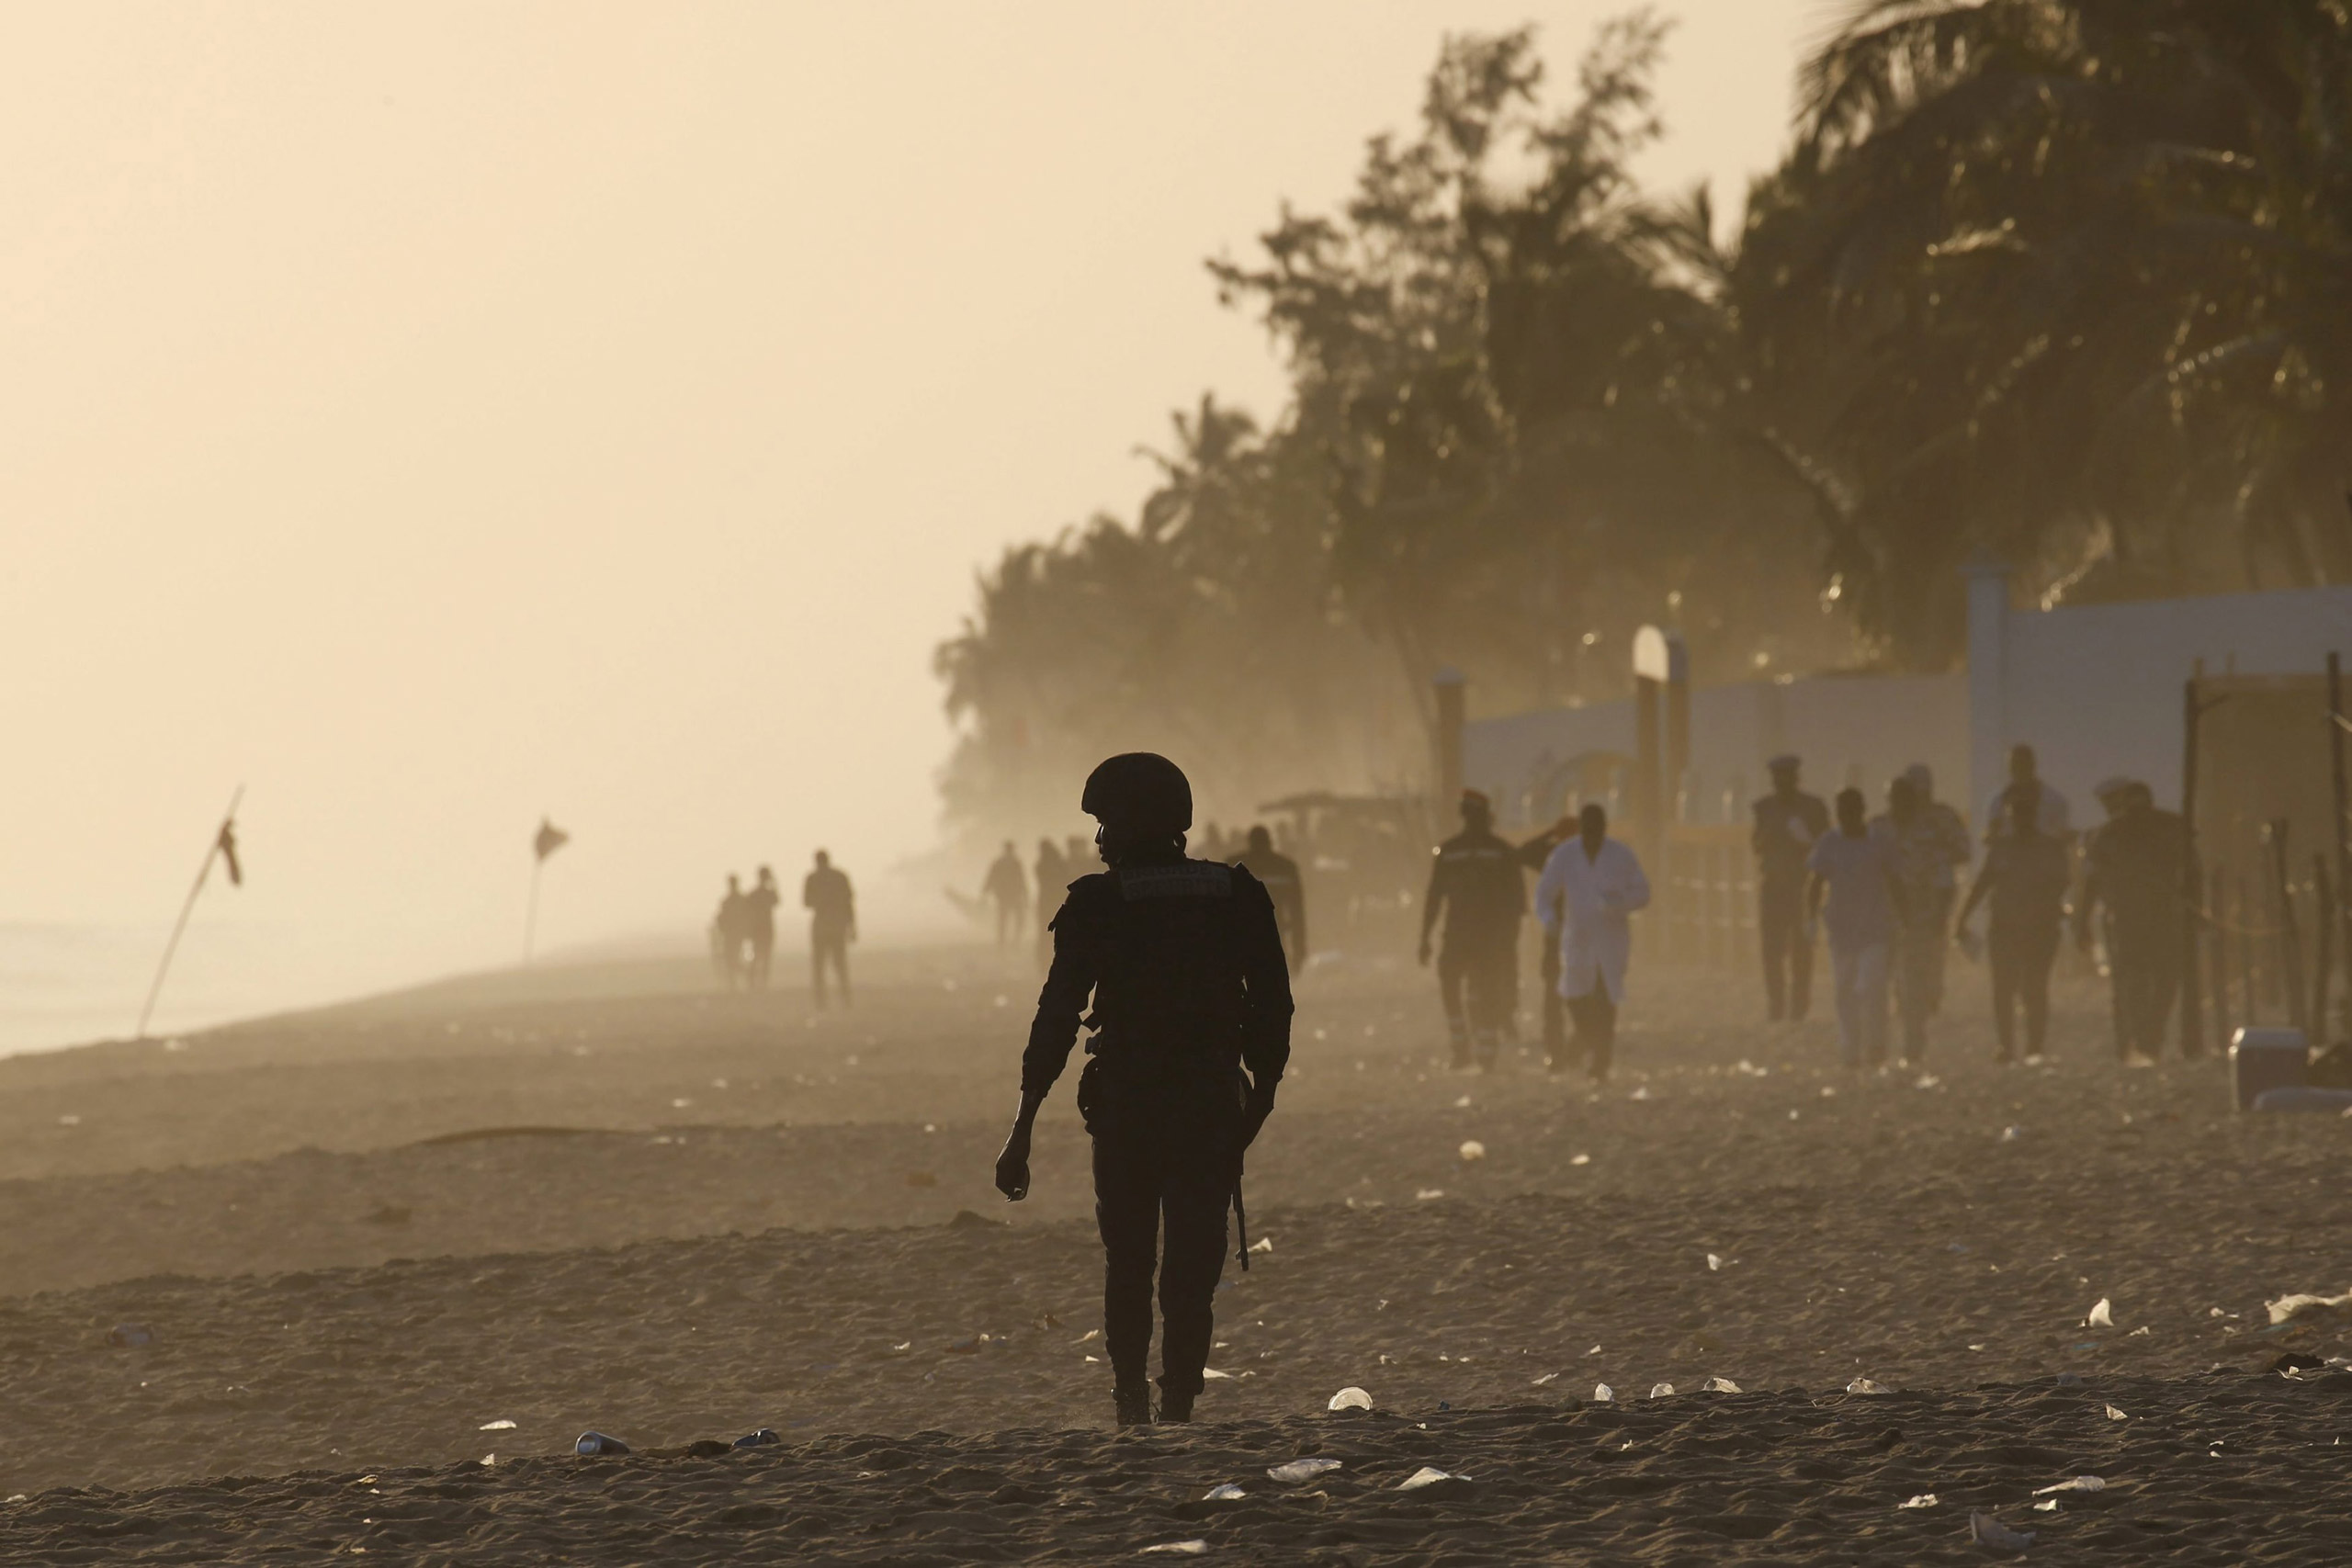 A security officer walks on the beach after an attack in Grand-Bassam, Ivory Coast, on March 13, 2016.